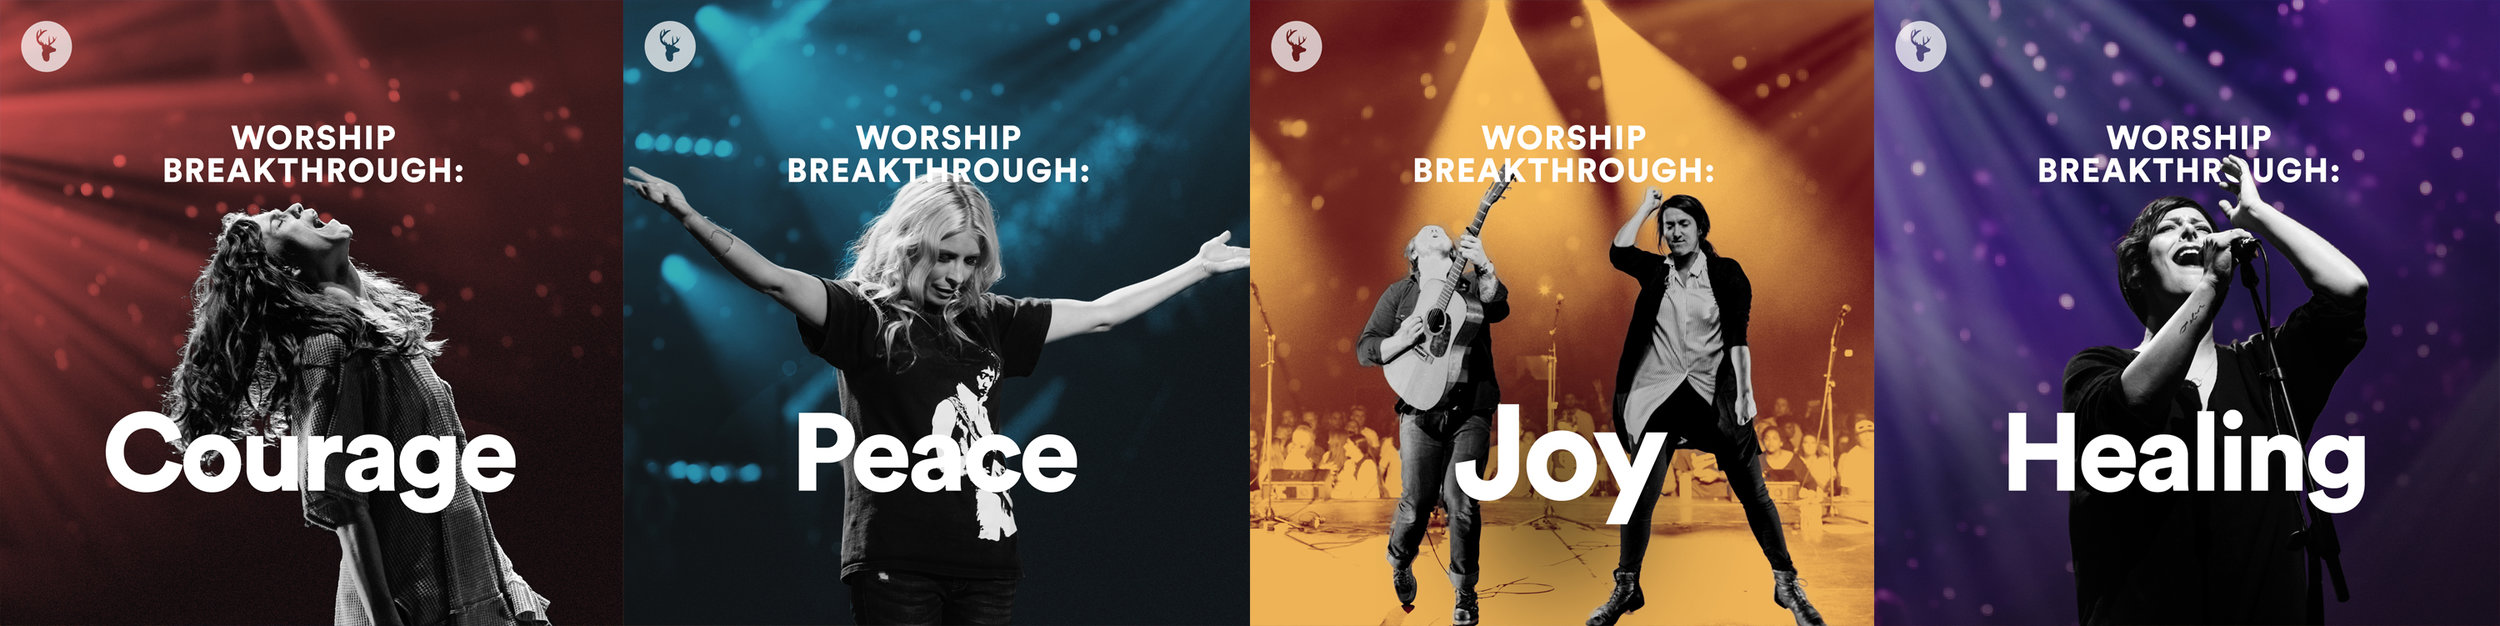 """Cover graphics for our """"Worship Breakthrough"""" playlist series"""